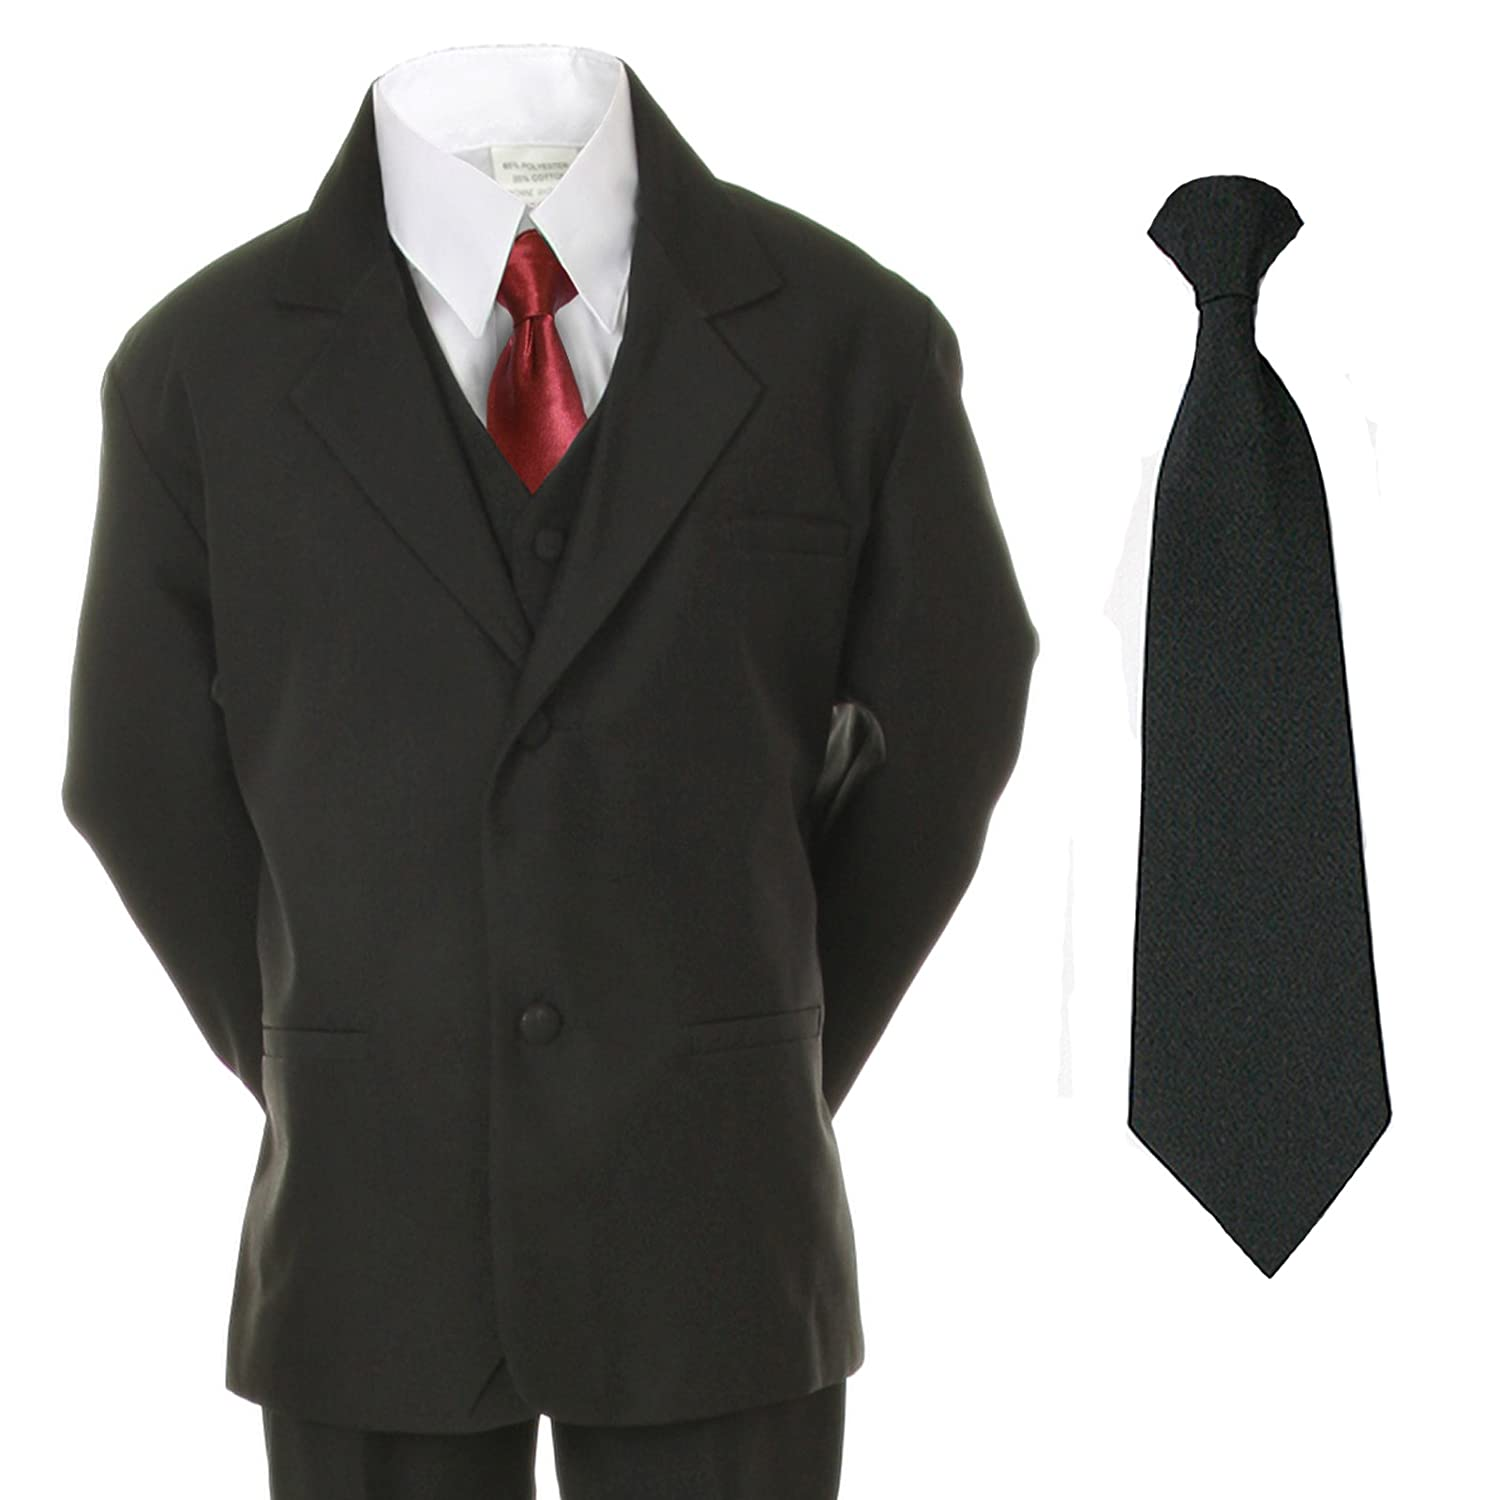 Unotux 6pc Boys Suit with Satin Burgundy Necktie from Baby to Teen